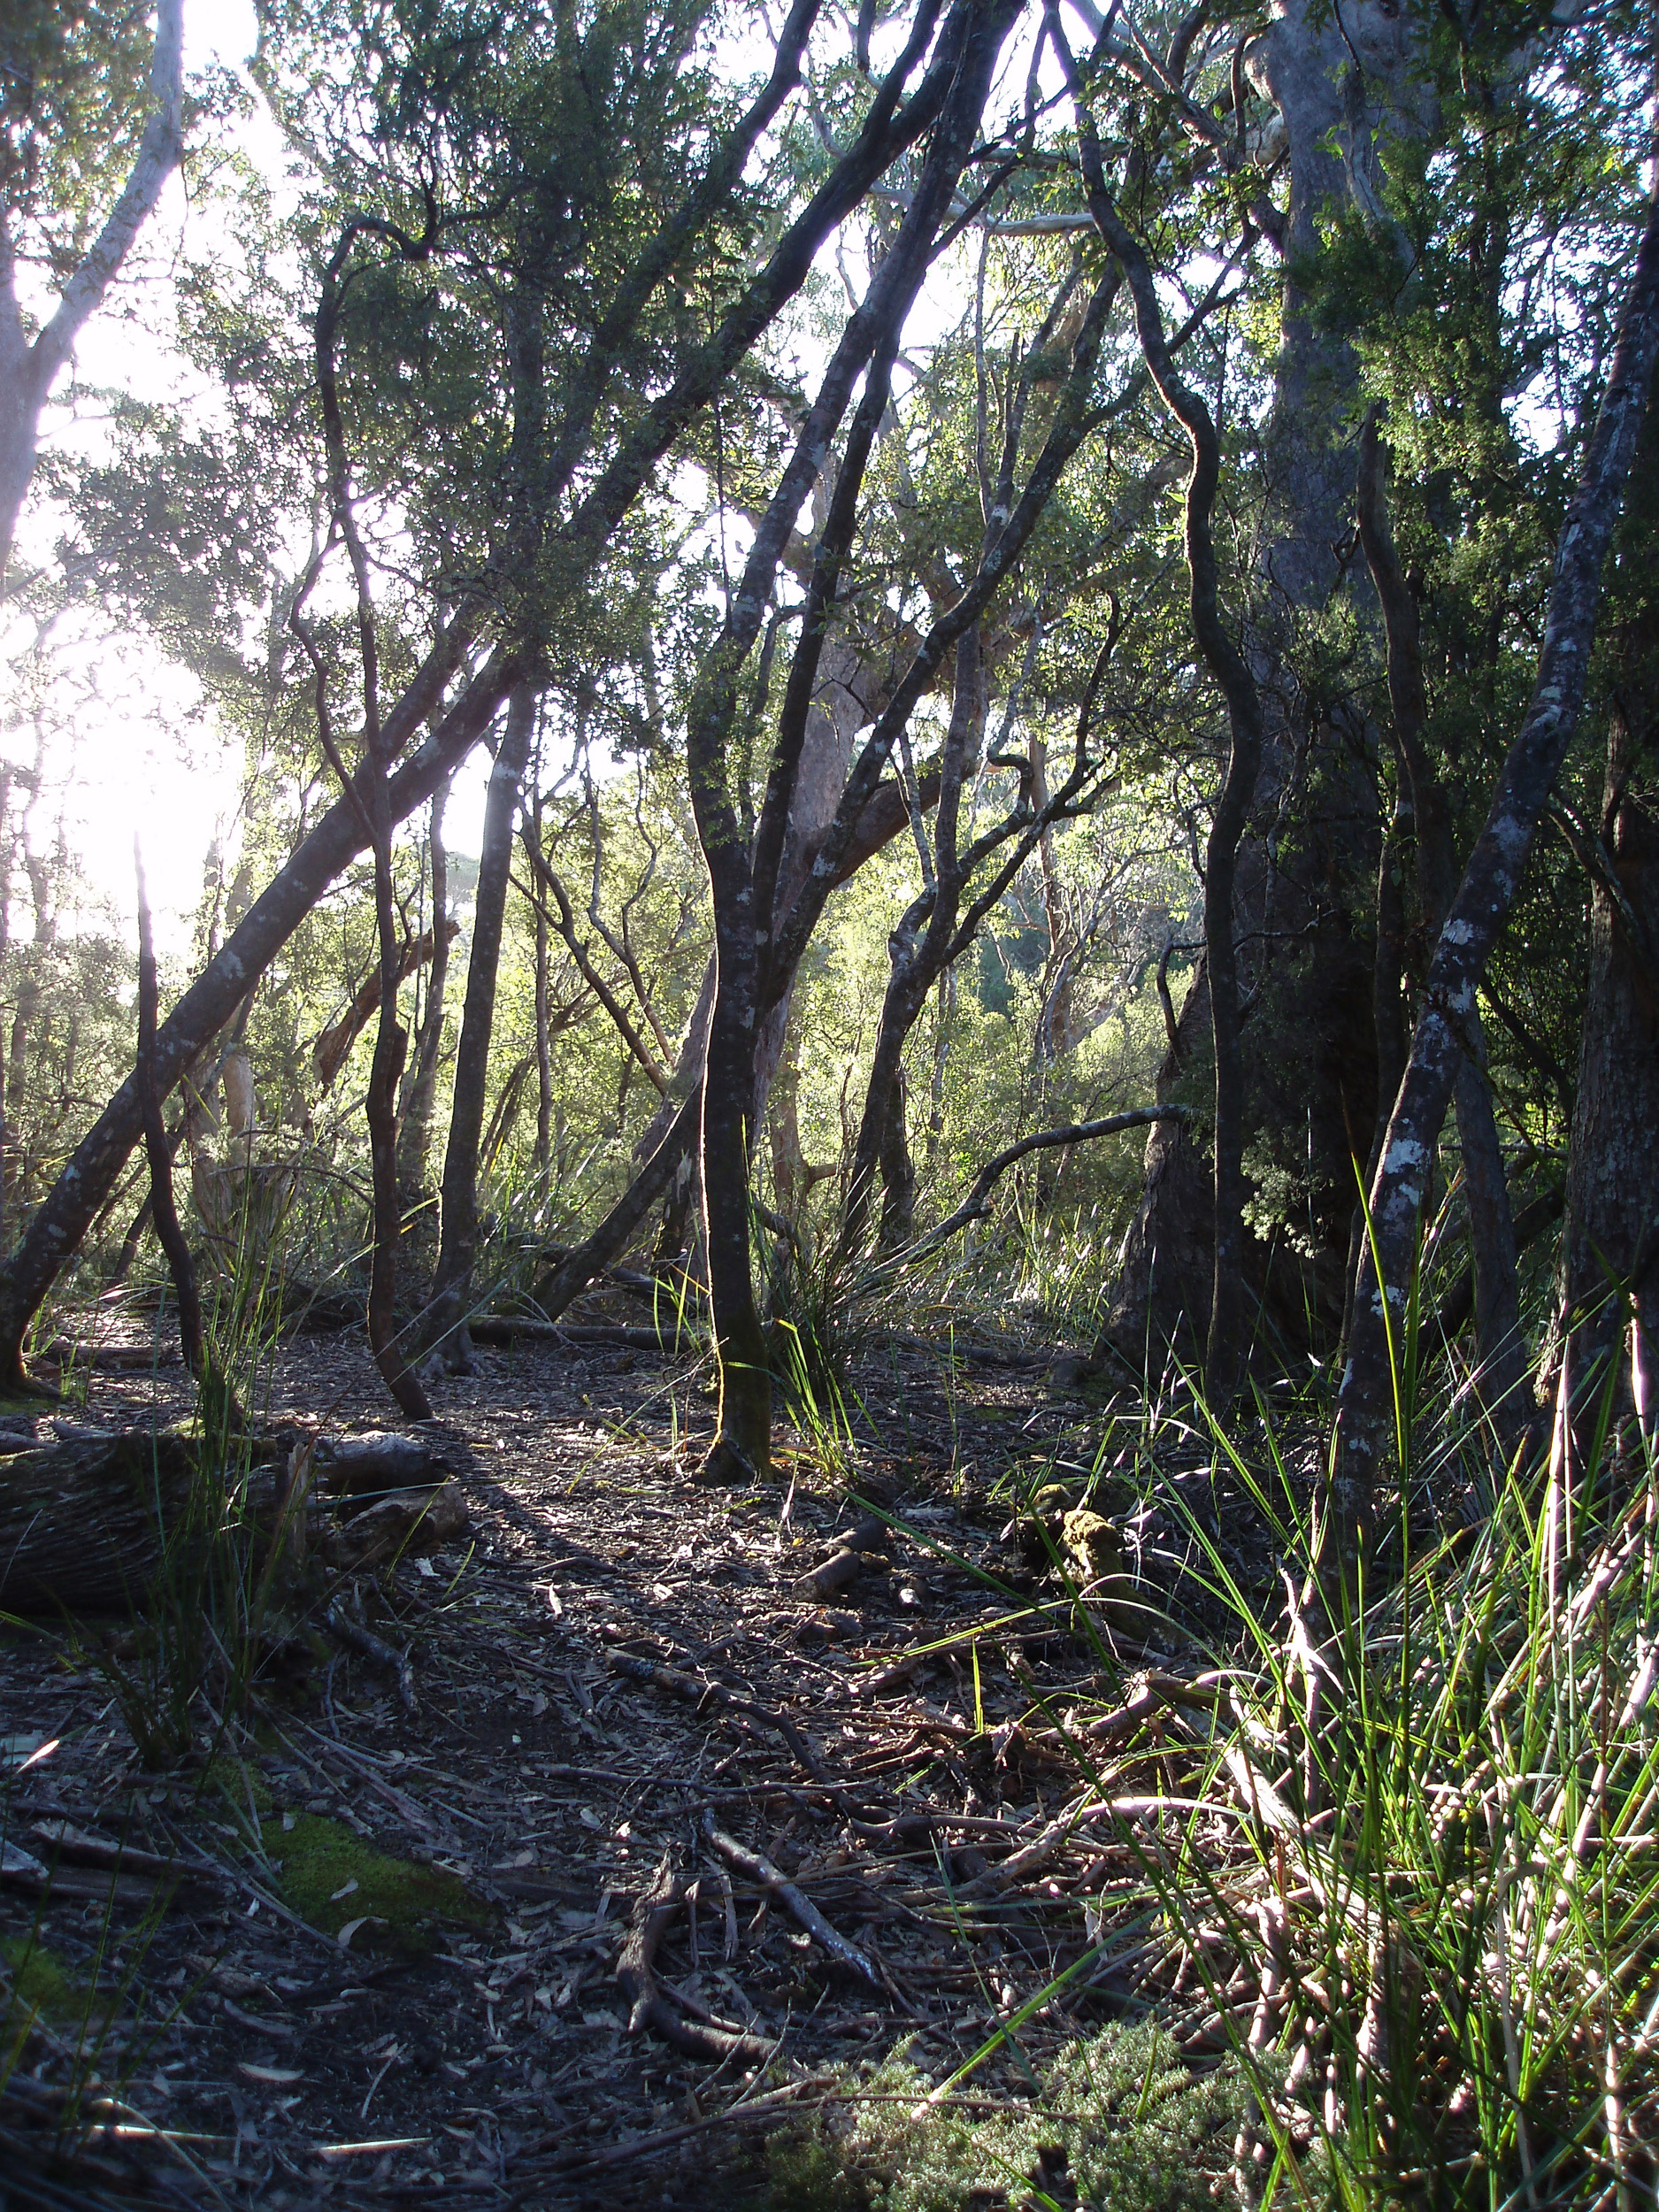 afternoon sun through the trees on a remote bushwalking track in tasmania